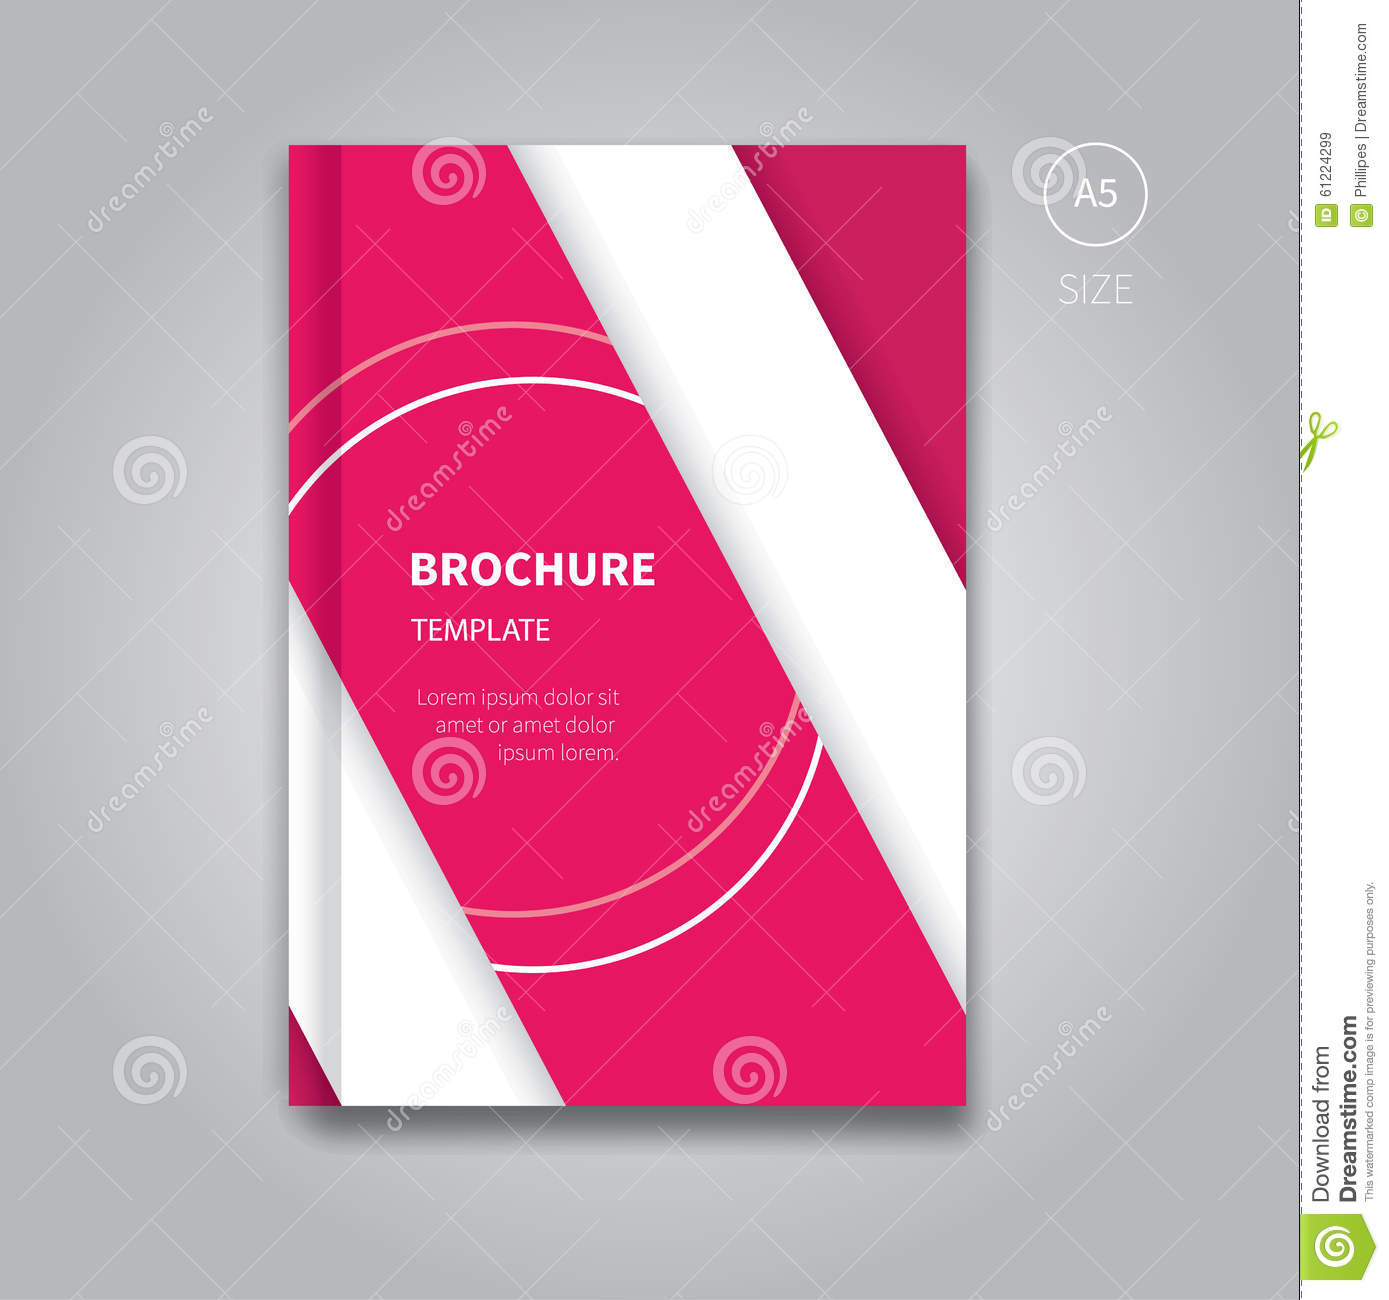 Book Cover Design Template Ks : Cover book digital design tablet concept template vector